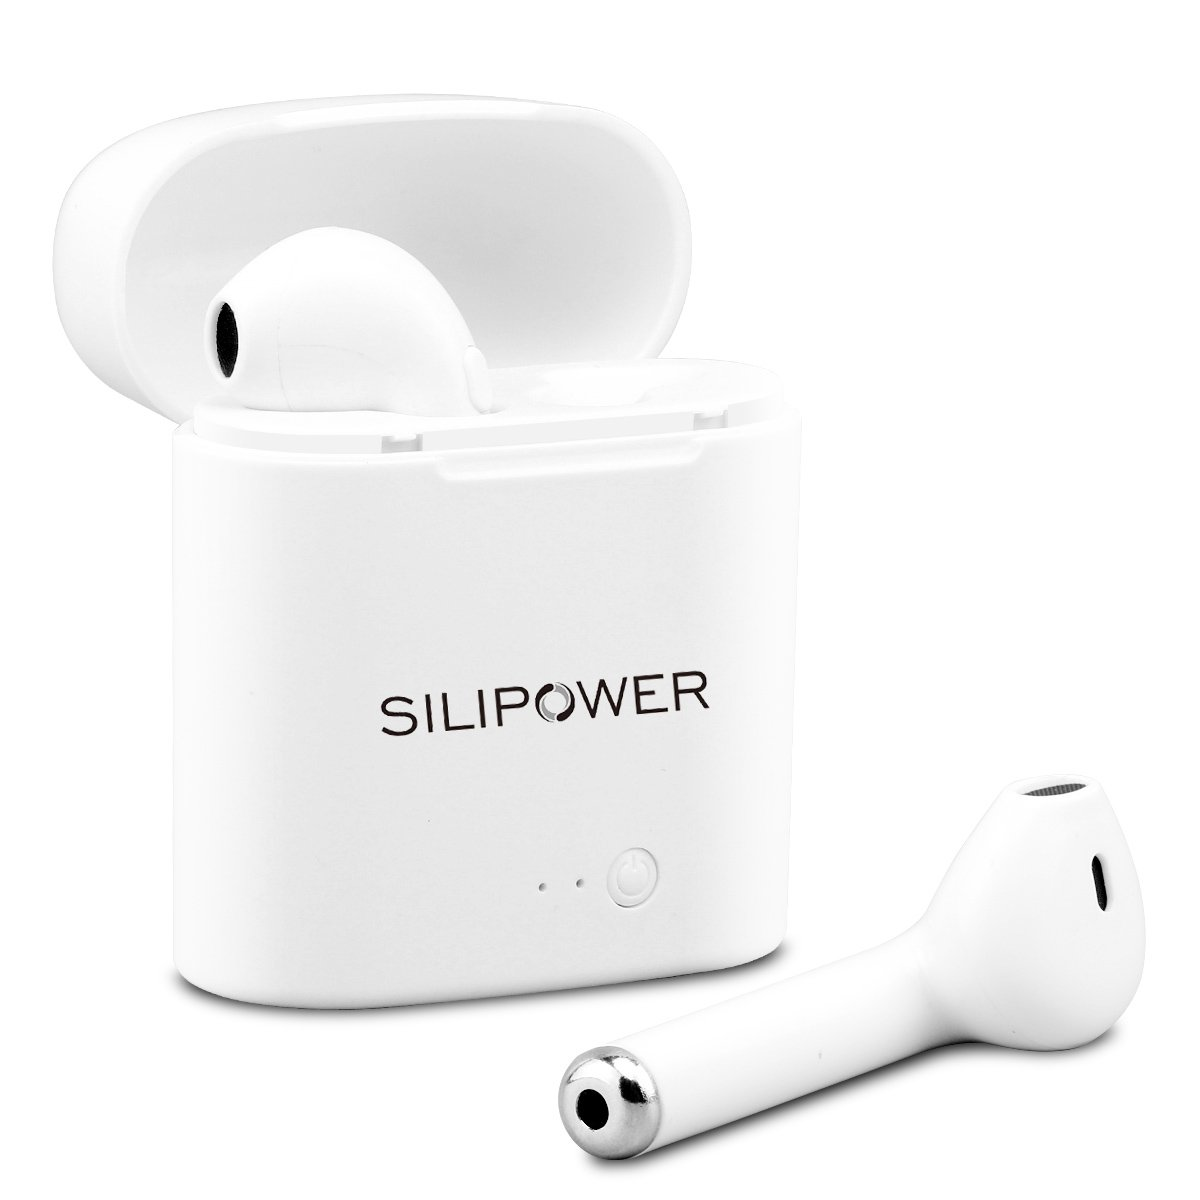 Bluetooth Earbuds,Silipower Wireless Headphones Sweatproof Headsets Stereo In-Ear Earpieces Earphones With Noise Canceling Microphone for iPhone X 8 8plus 7 7plus 6S Samsung Galaxy S7 S8 IOS Android